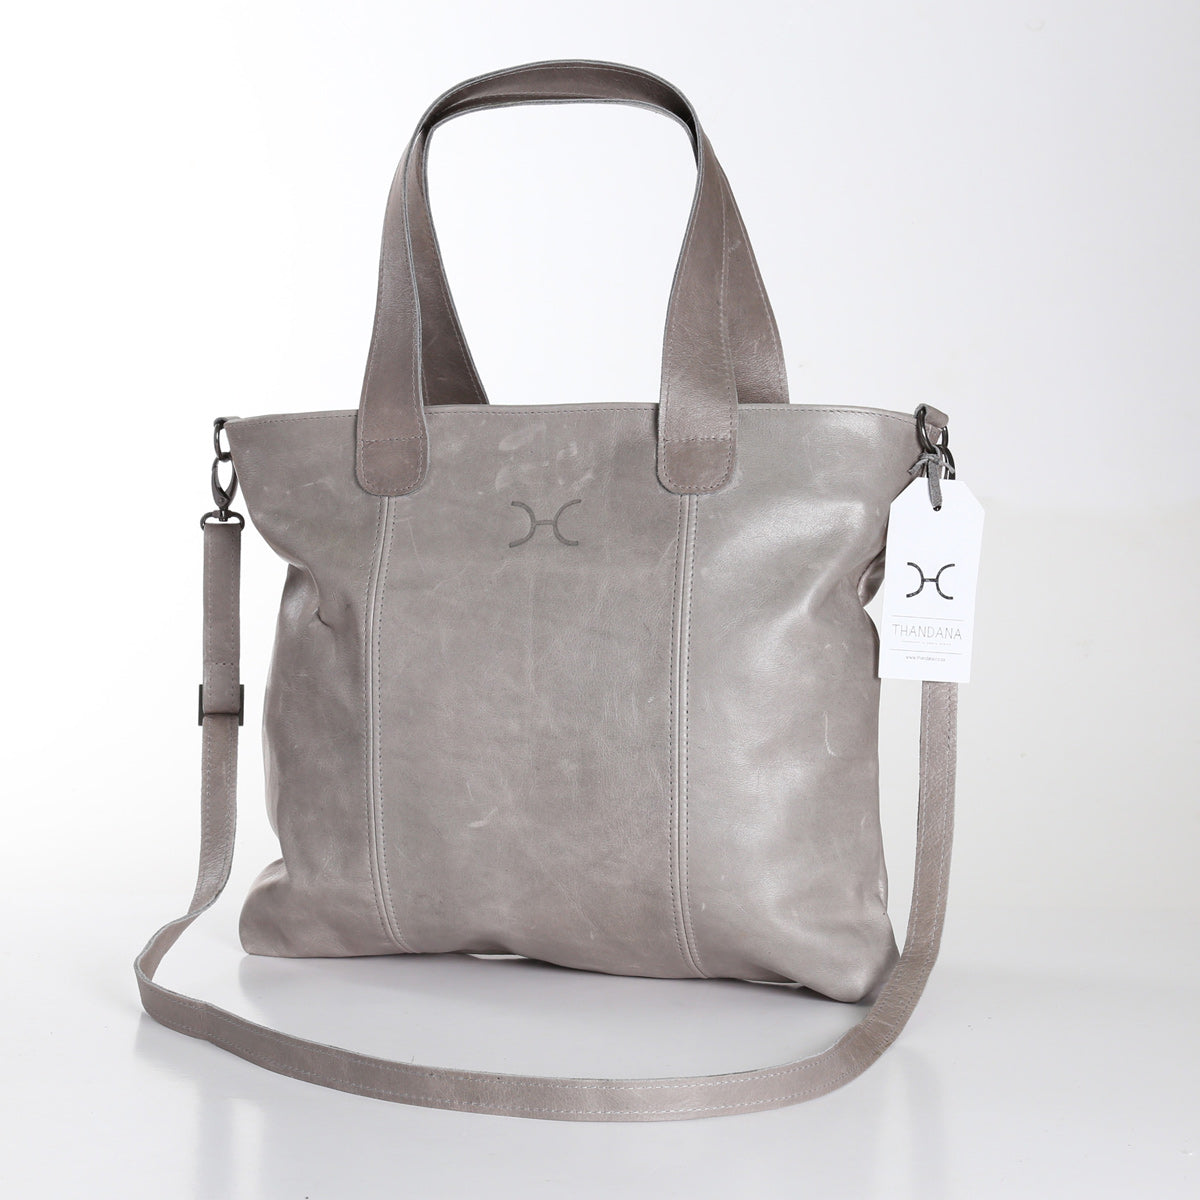 Thandana Jax Handbag - Grey - Zufrique Boutique